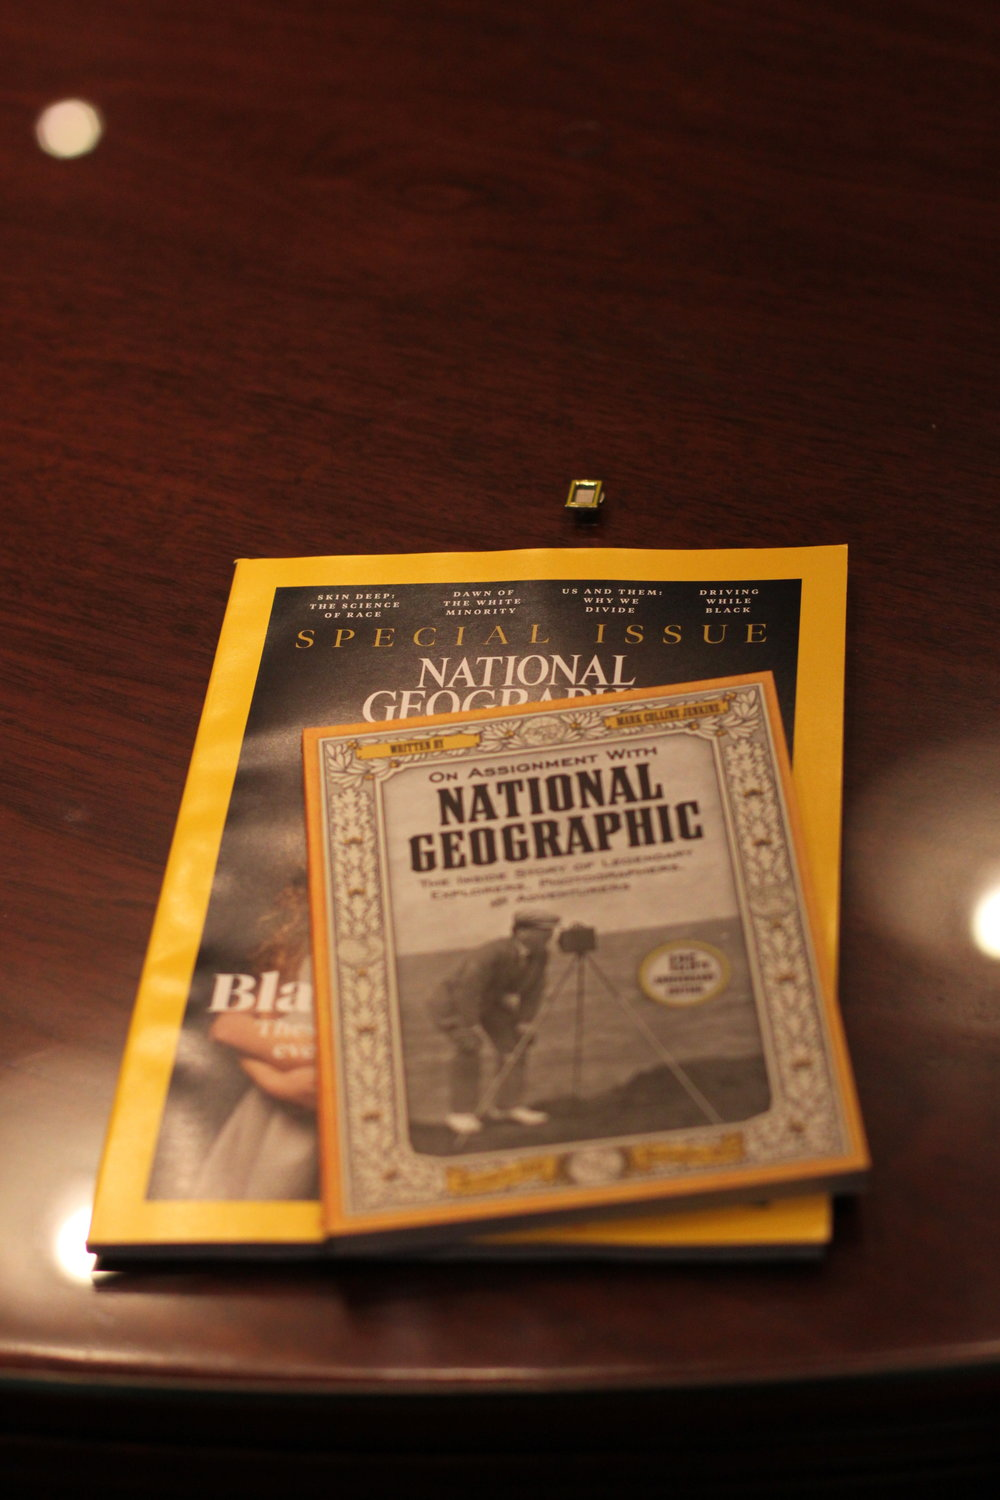 Have you read National Geographic? Photo by Alison Travis